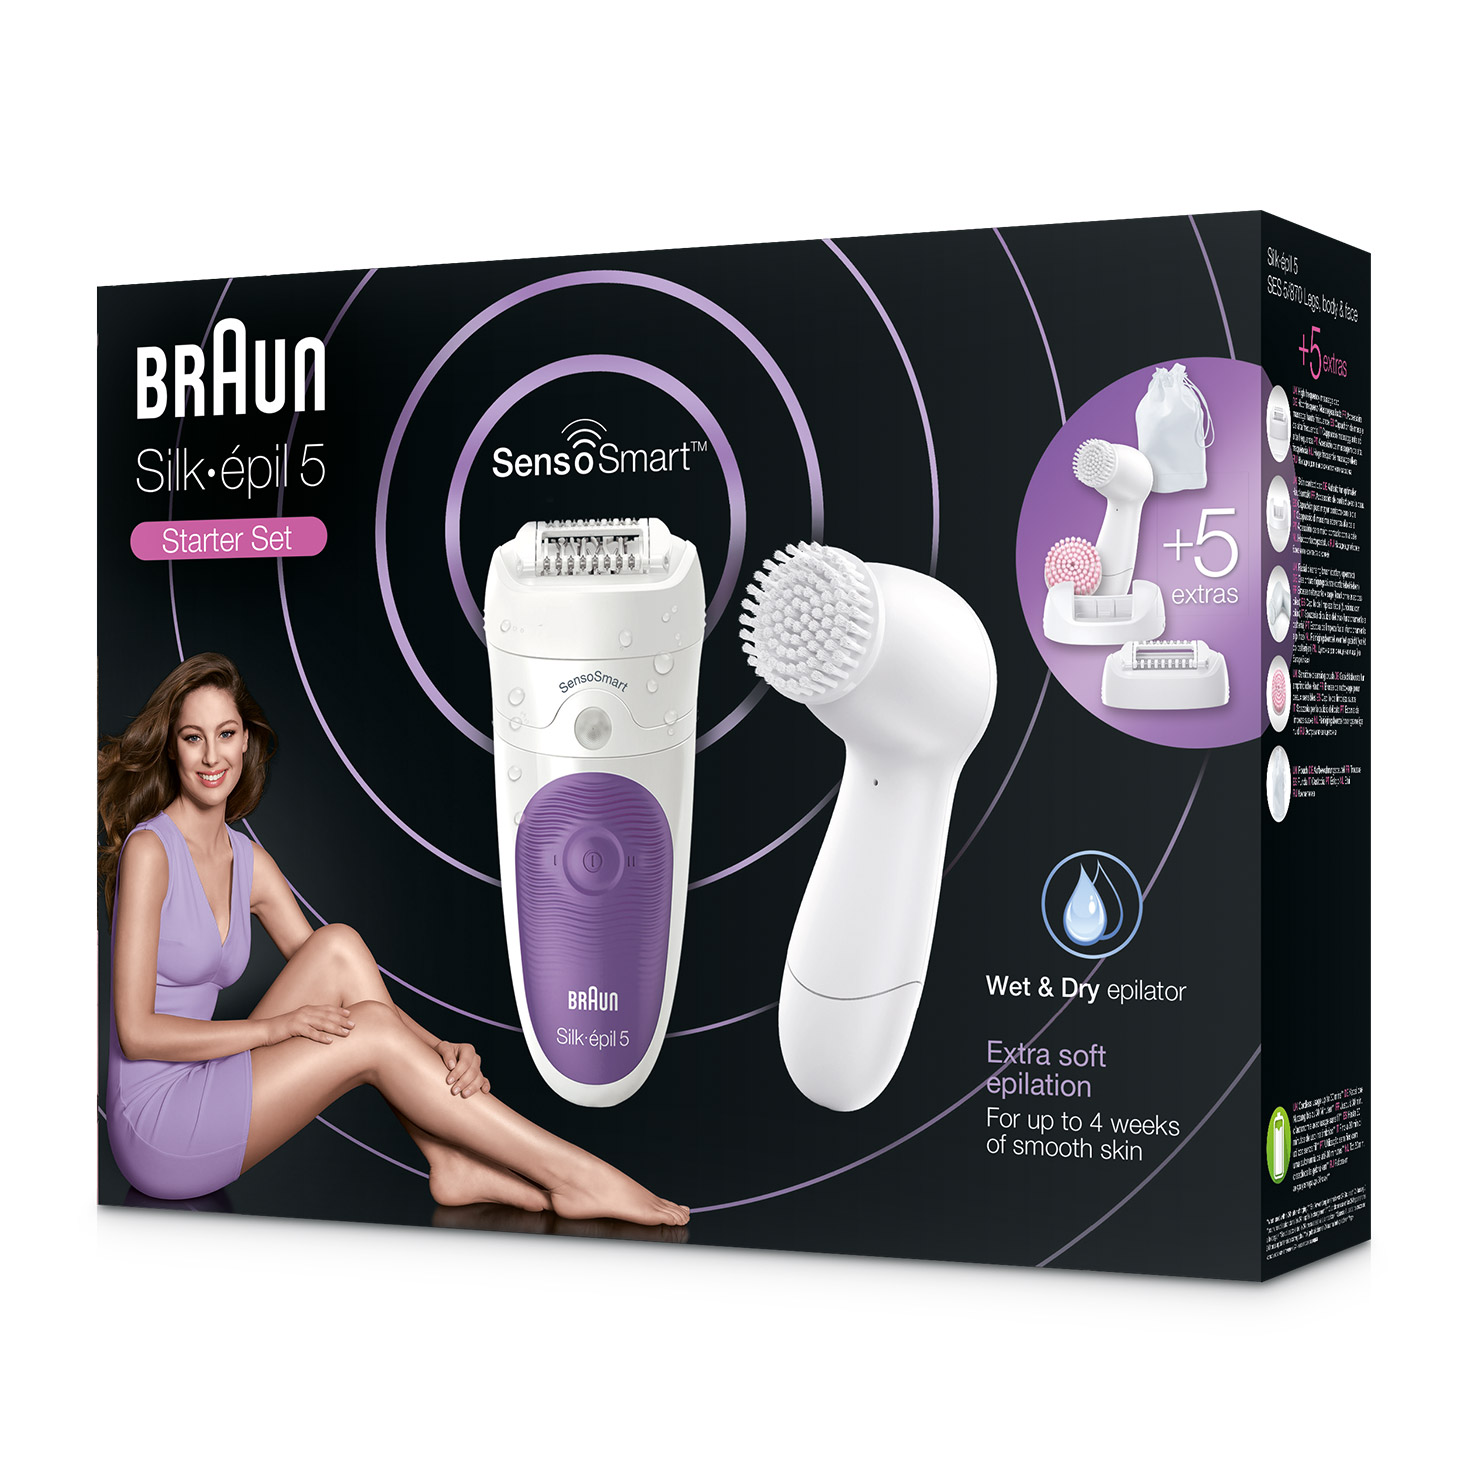 Silk-épil 5 5/870 SensoSmart epilator - packaging